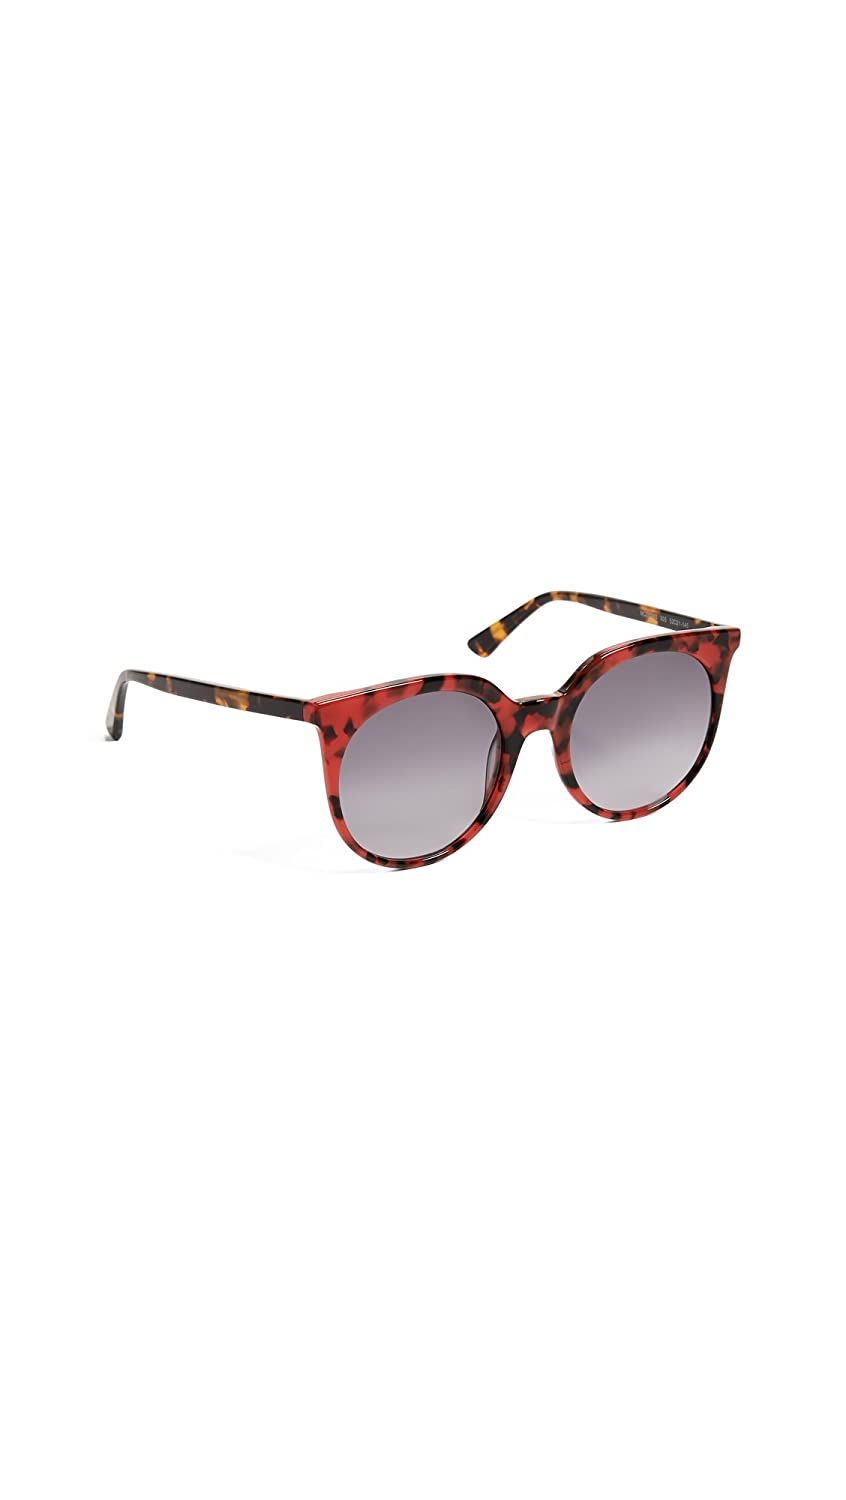 50e386edca Amazon.com  McQ - Alexander McQueen Women s Artstar Logo Cat Eye Sunglasses